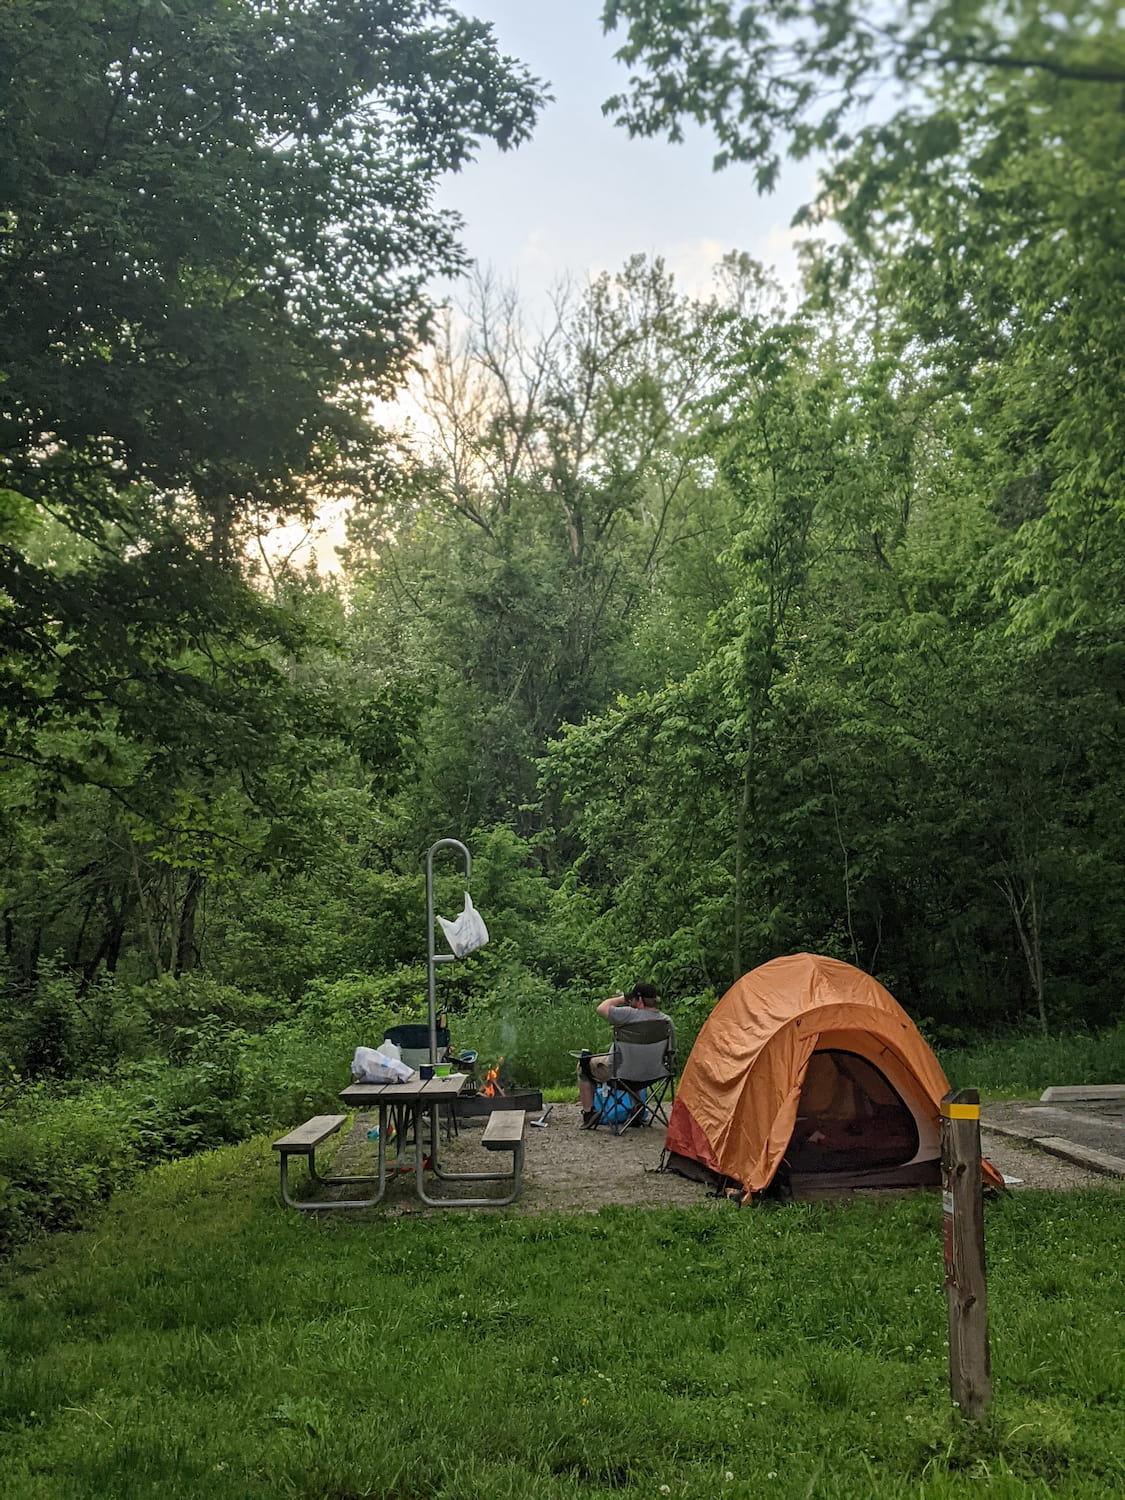 Orange tent beside picnic table in lush forested campsite.